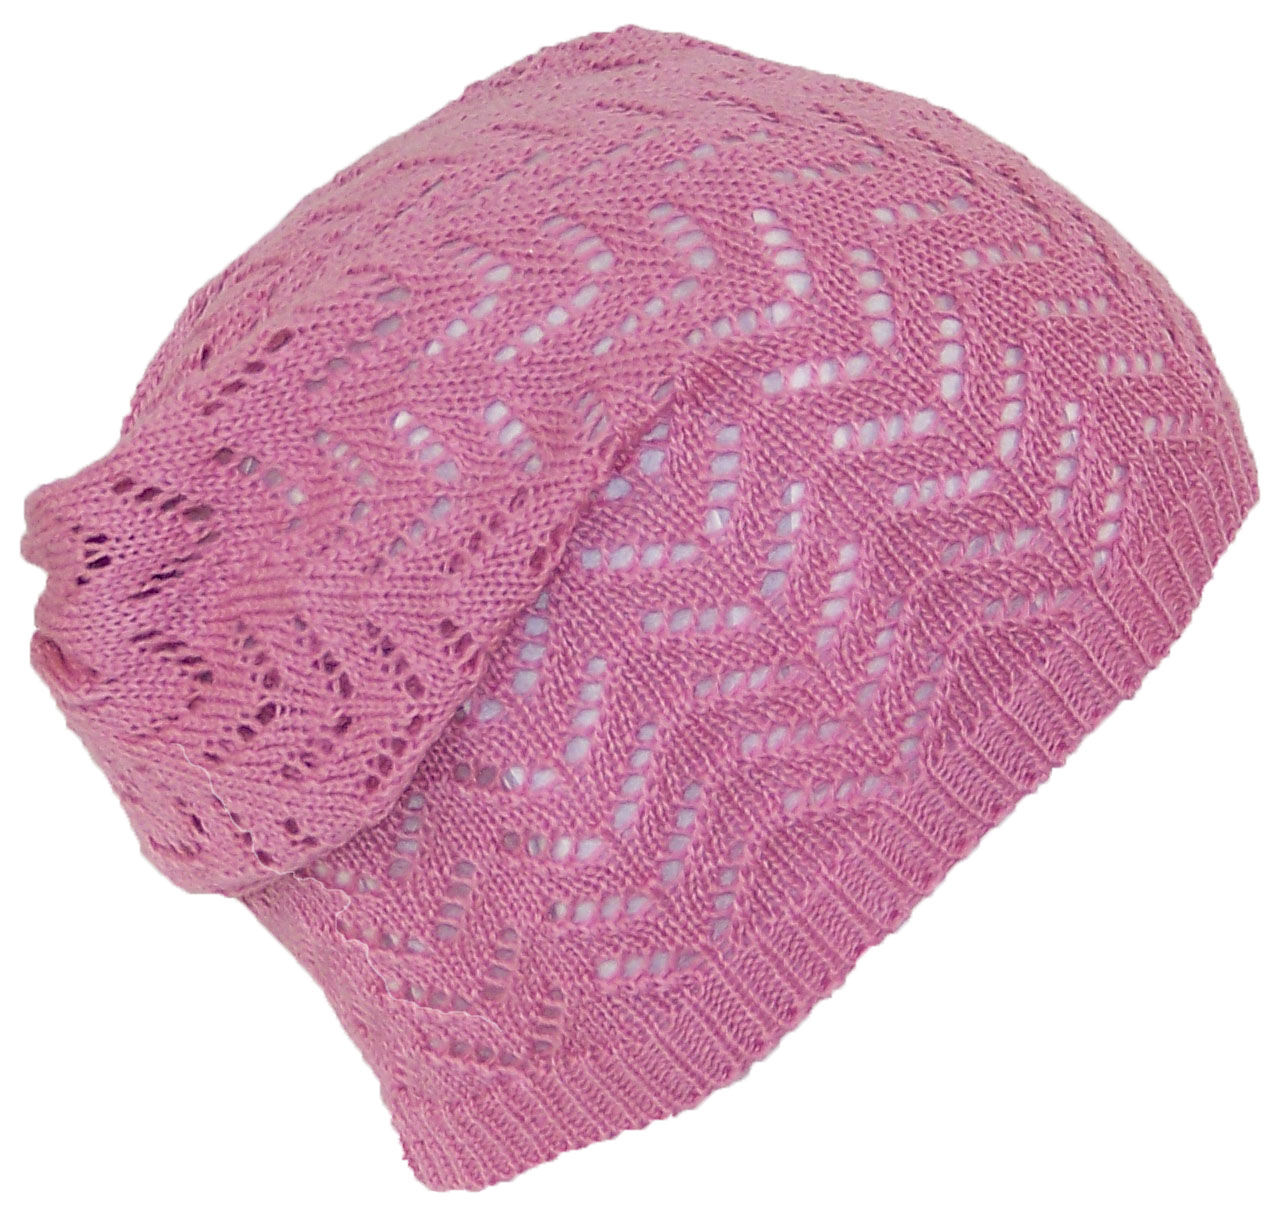 Knit Skull Cap Pattern : David & Young Womens Loose Knit Lightweight Chevron Pattern Beanie/Skull Cap